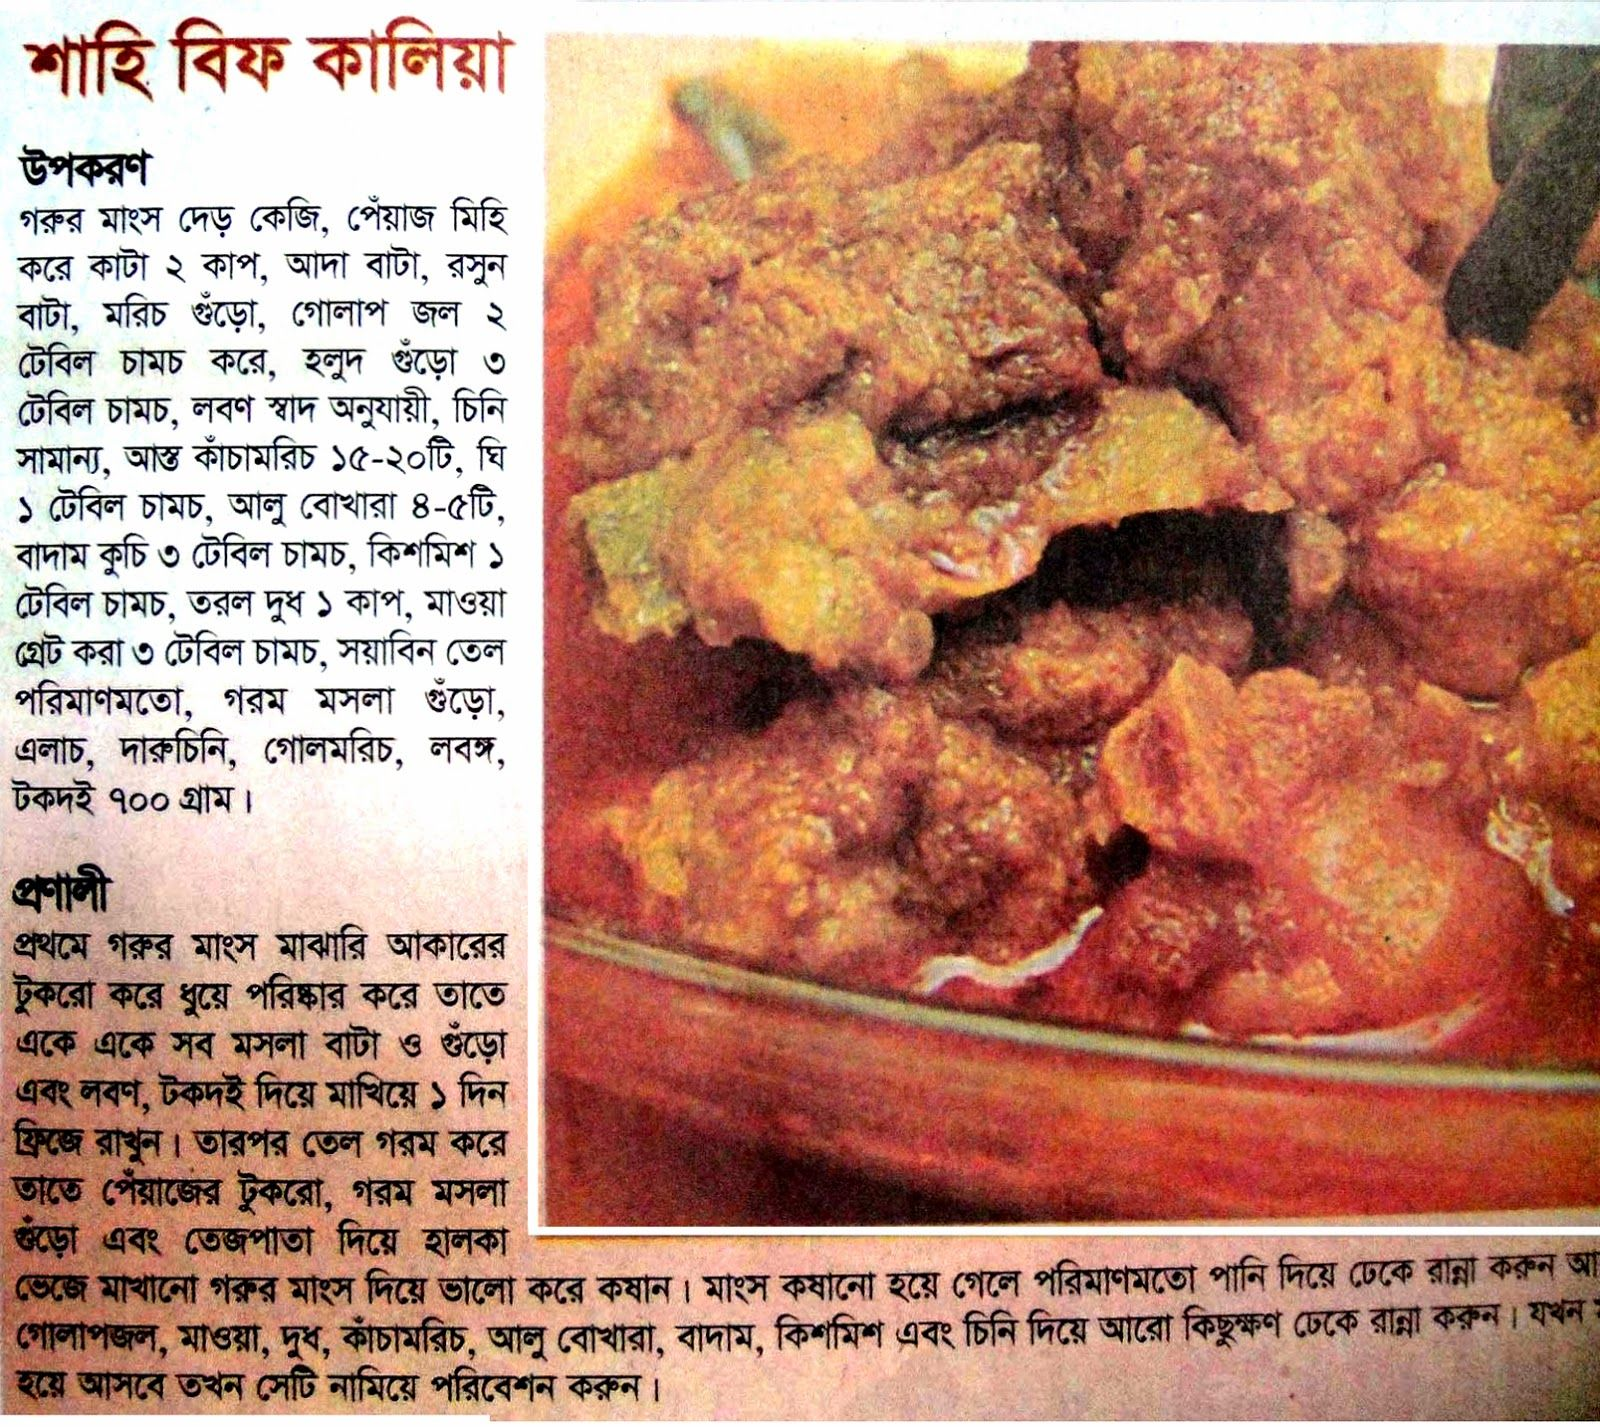 Bangladeshi food recipe gorur mangsher kaliya bangla recipe bangladeshi food recipe gorur mangsher kaliya bangla recipe forumfinder Image collections